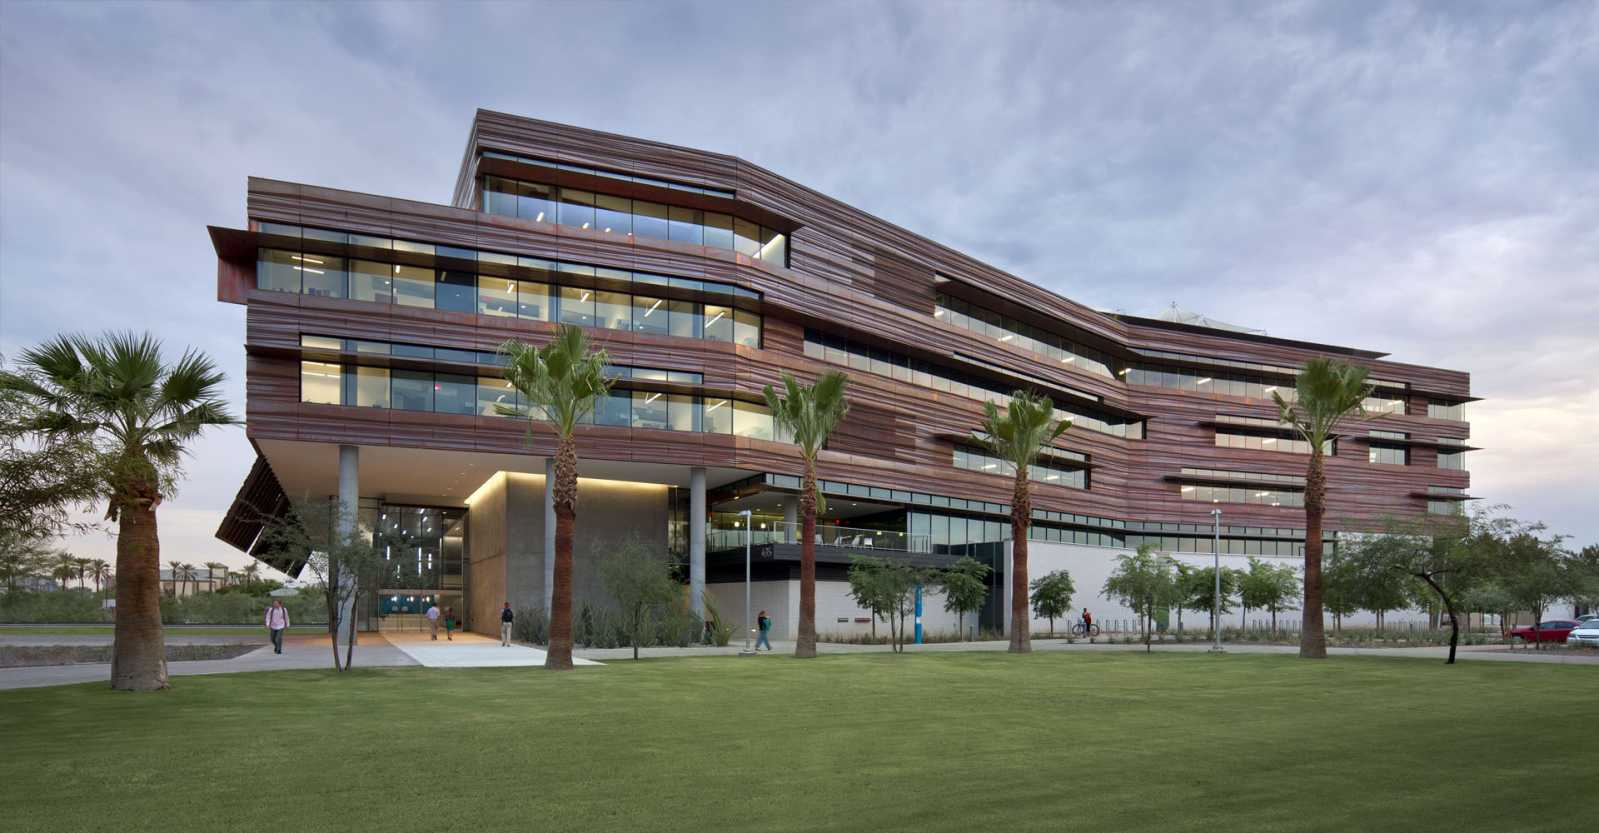 Health sciences education building by co architects for Architect education